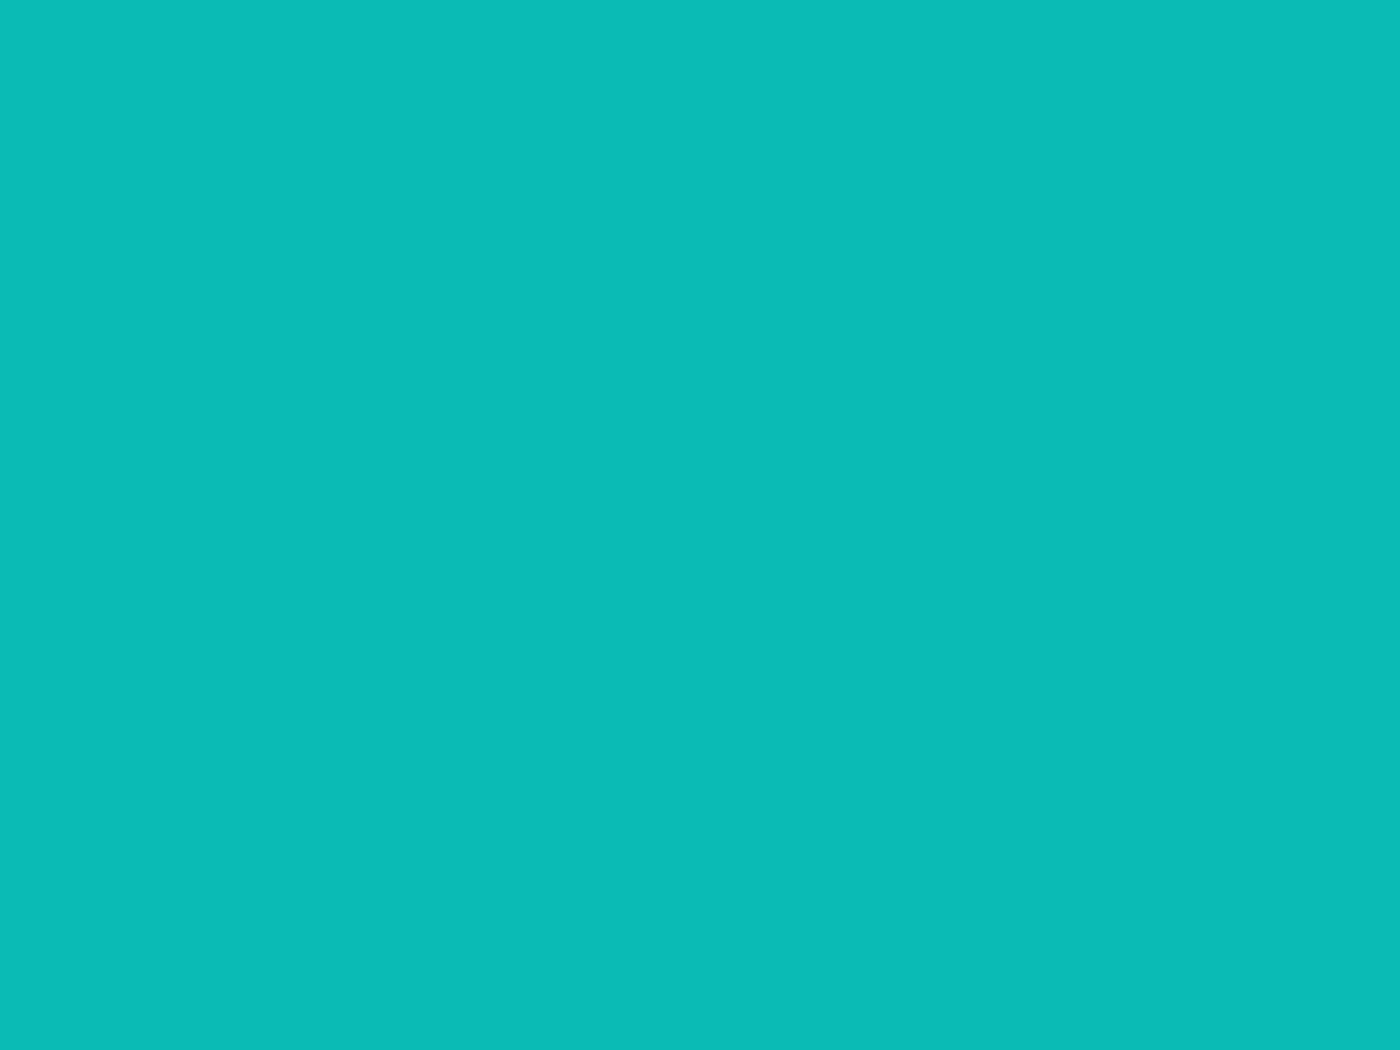 1400x1050 Tiffany Blue Solid Color Background